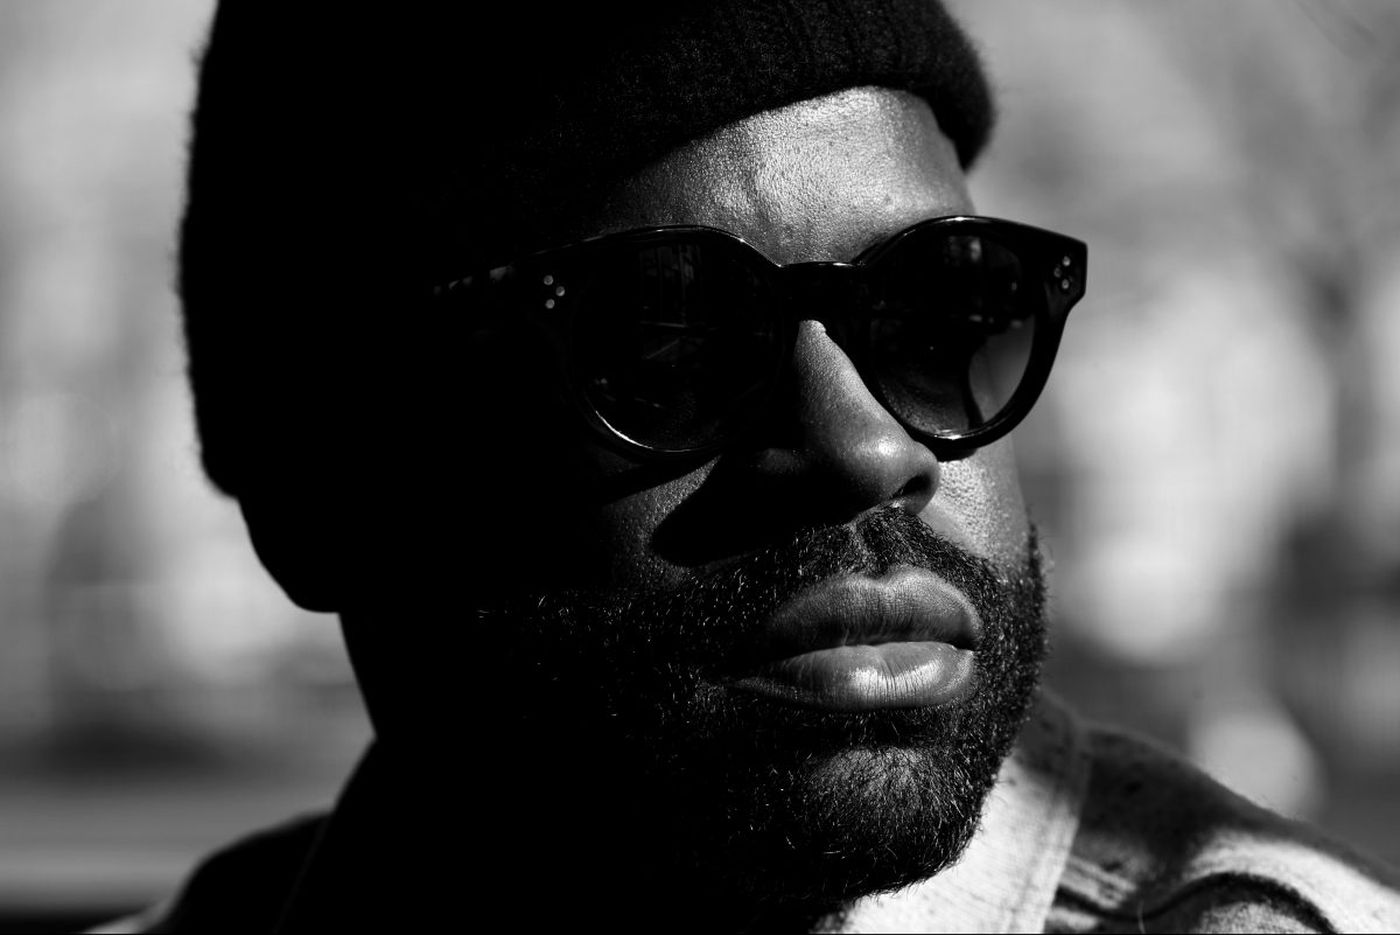 Black Thought remembers burning down his family's Mount Airy house as a kid in the New York Times